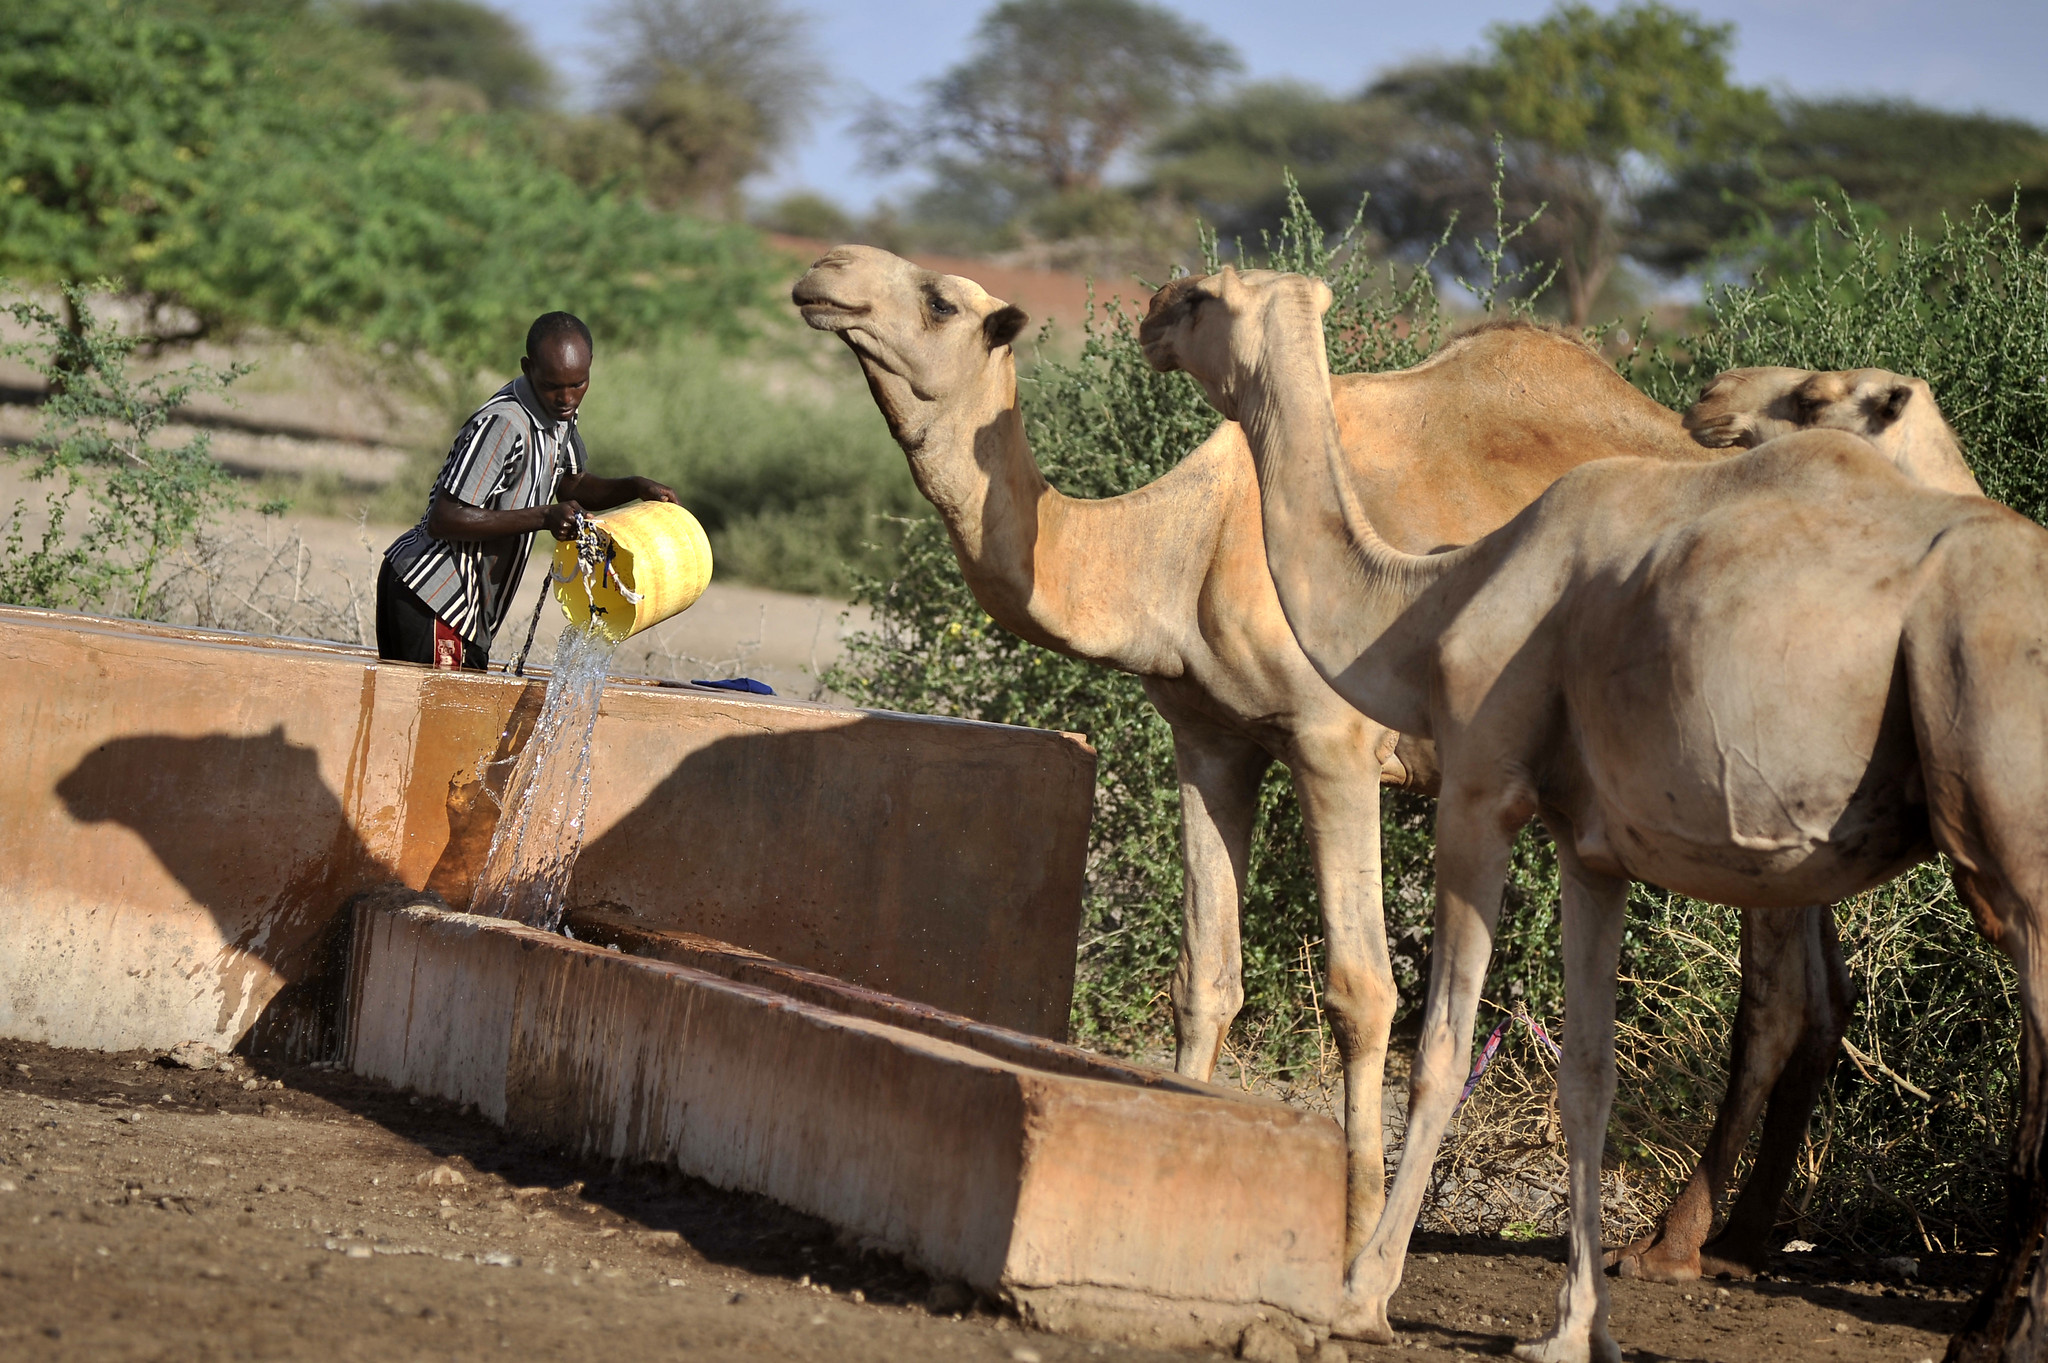 Watering camels near Wajir, northern Kenya